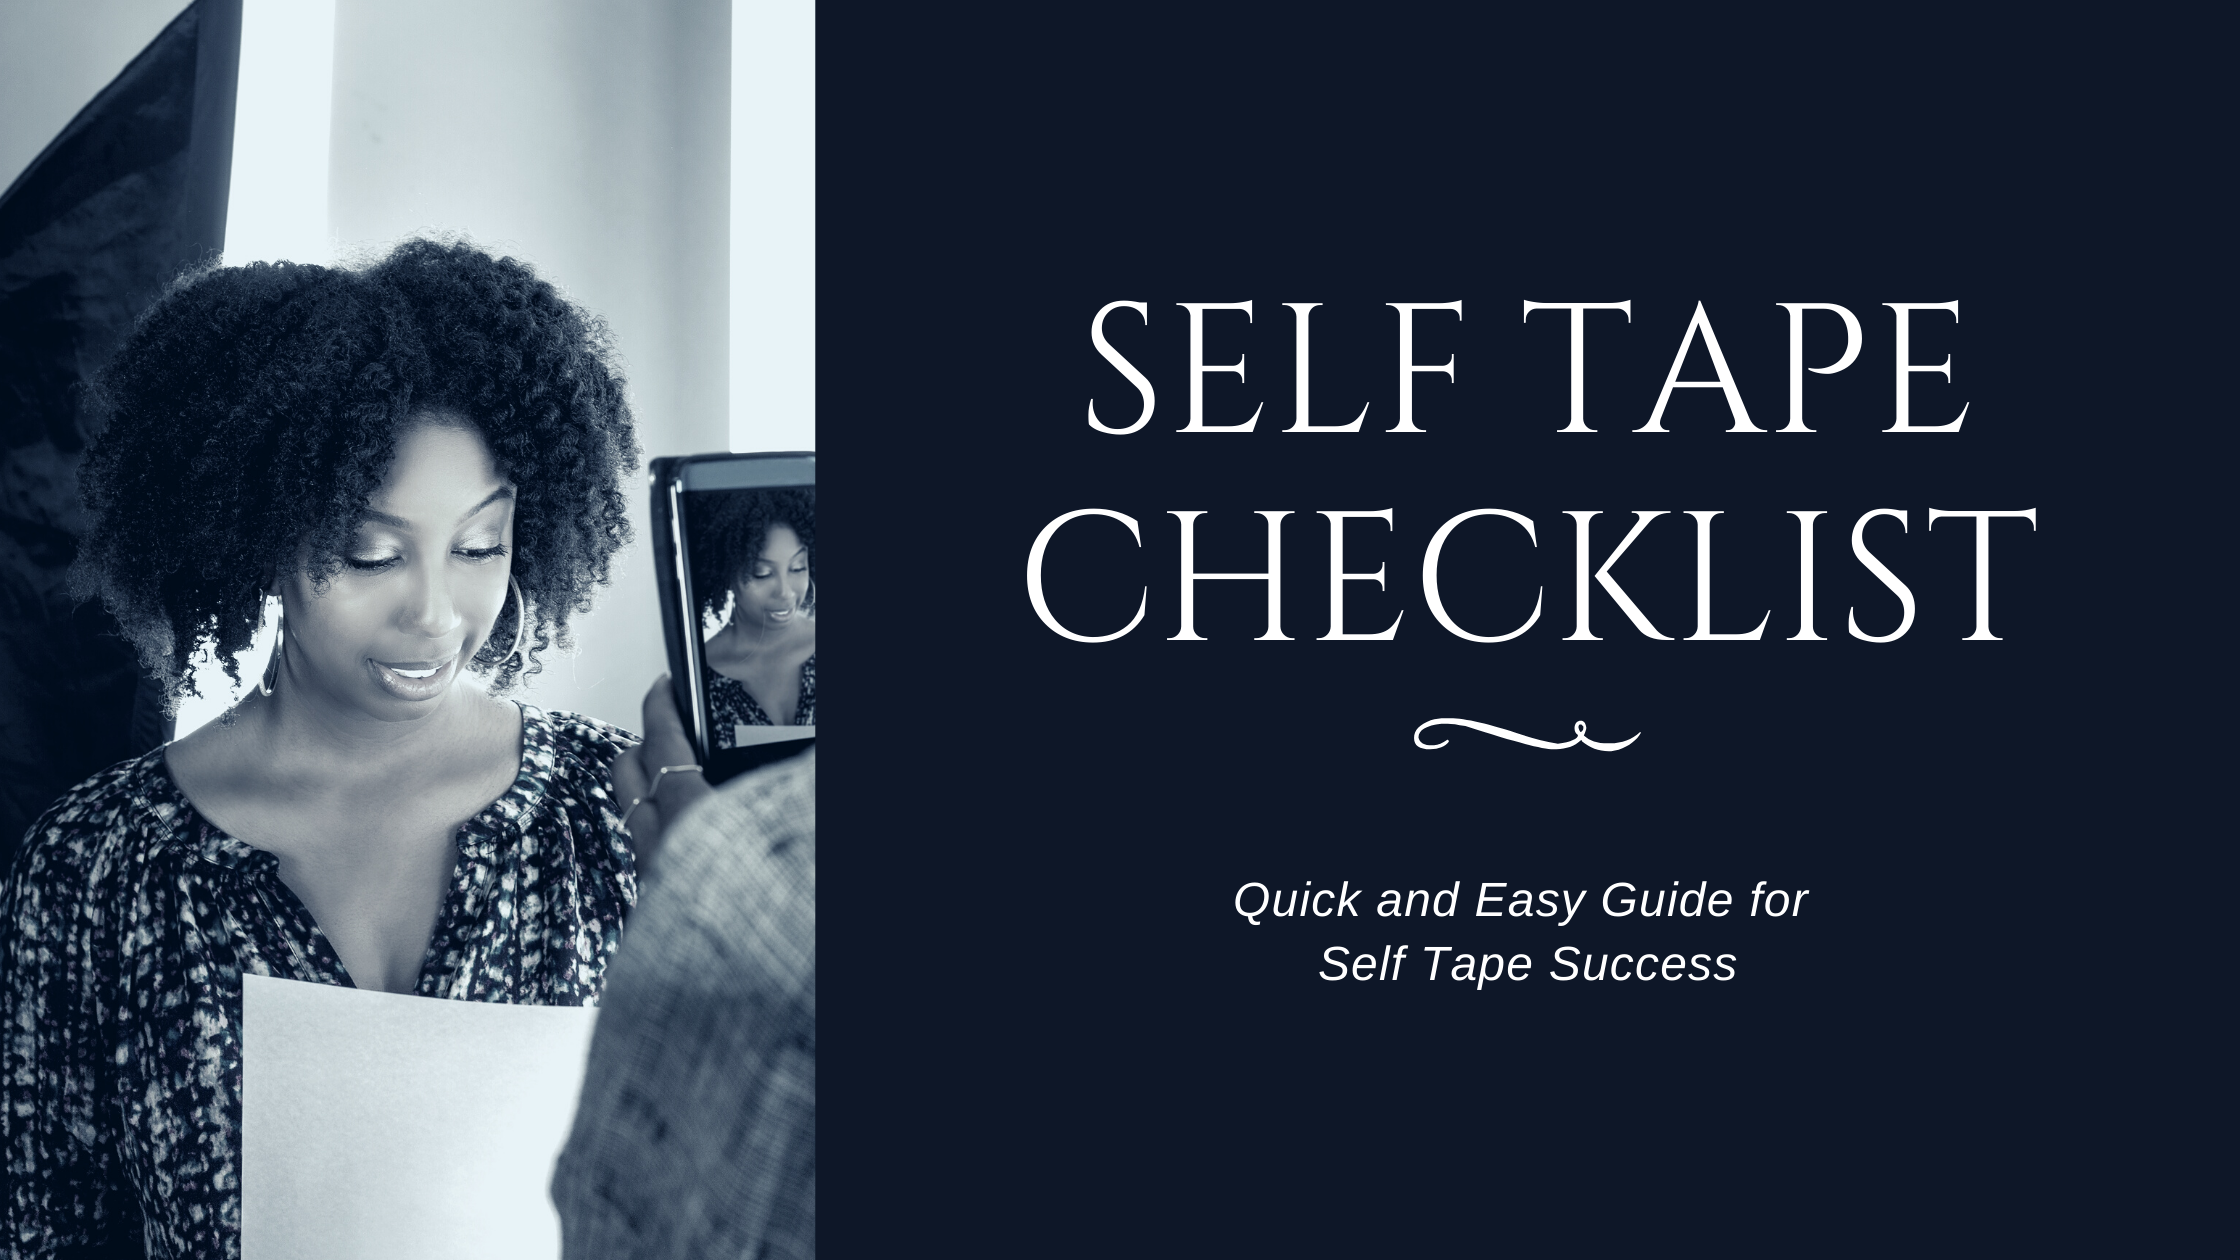 A Checklist For Self Tape Success